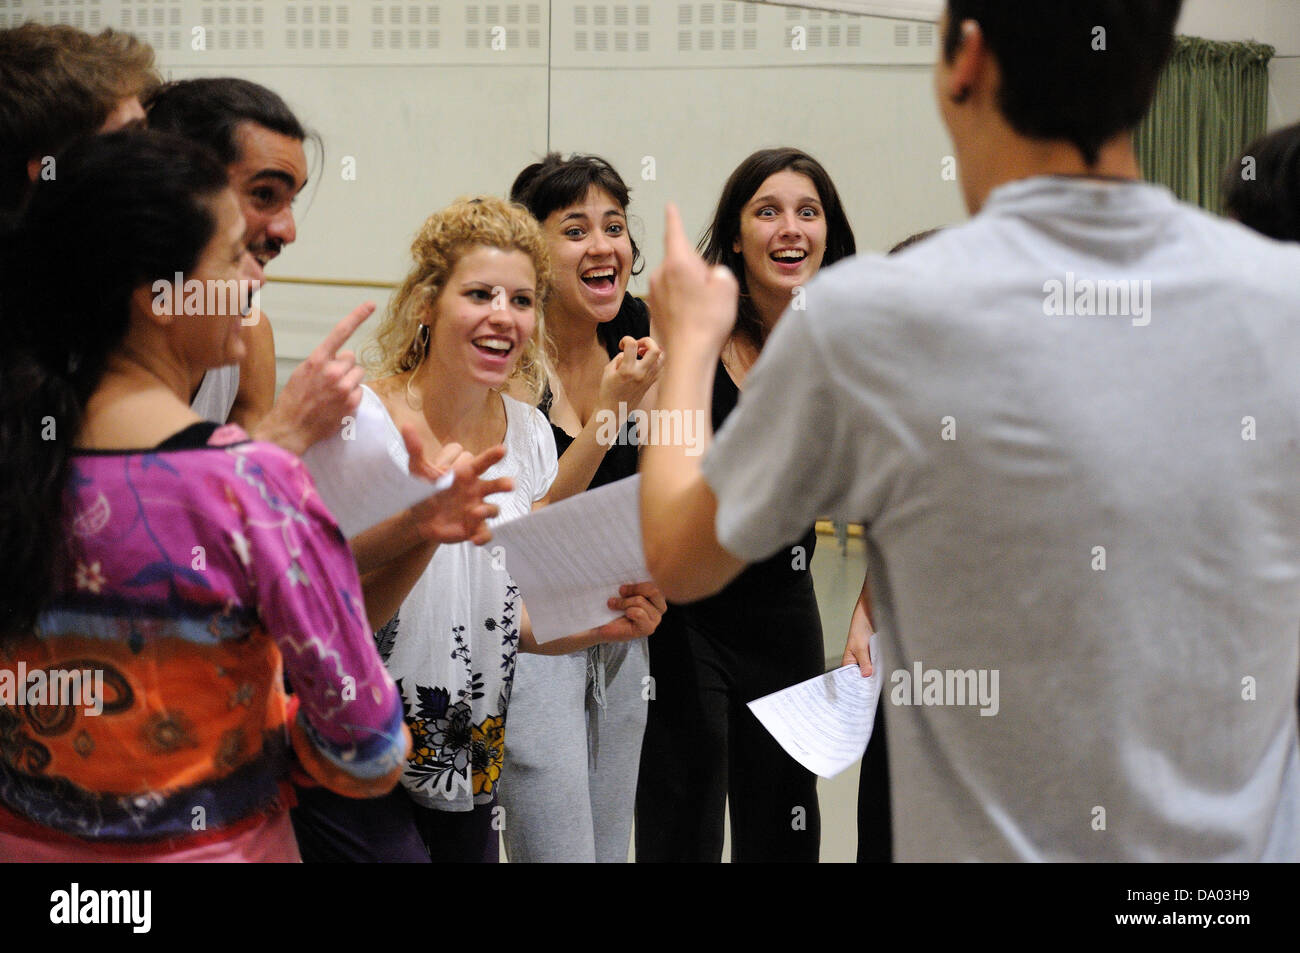 BARCELONA - MAR 3: Actors rehearsal Commedia dell'arte on March 3, 2011 in Barcelona, Spain. Stock Photo